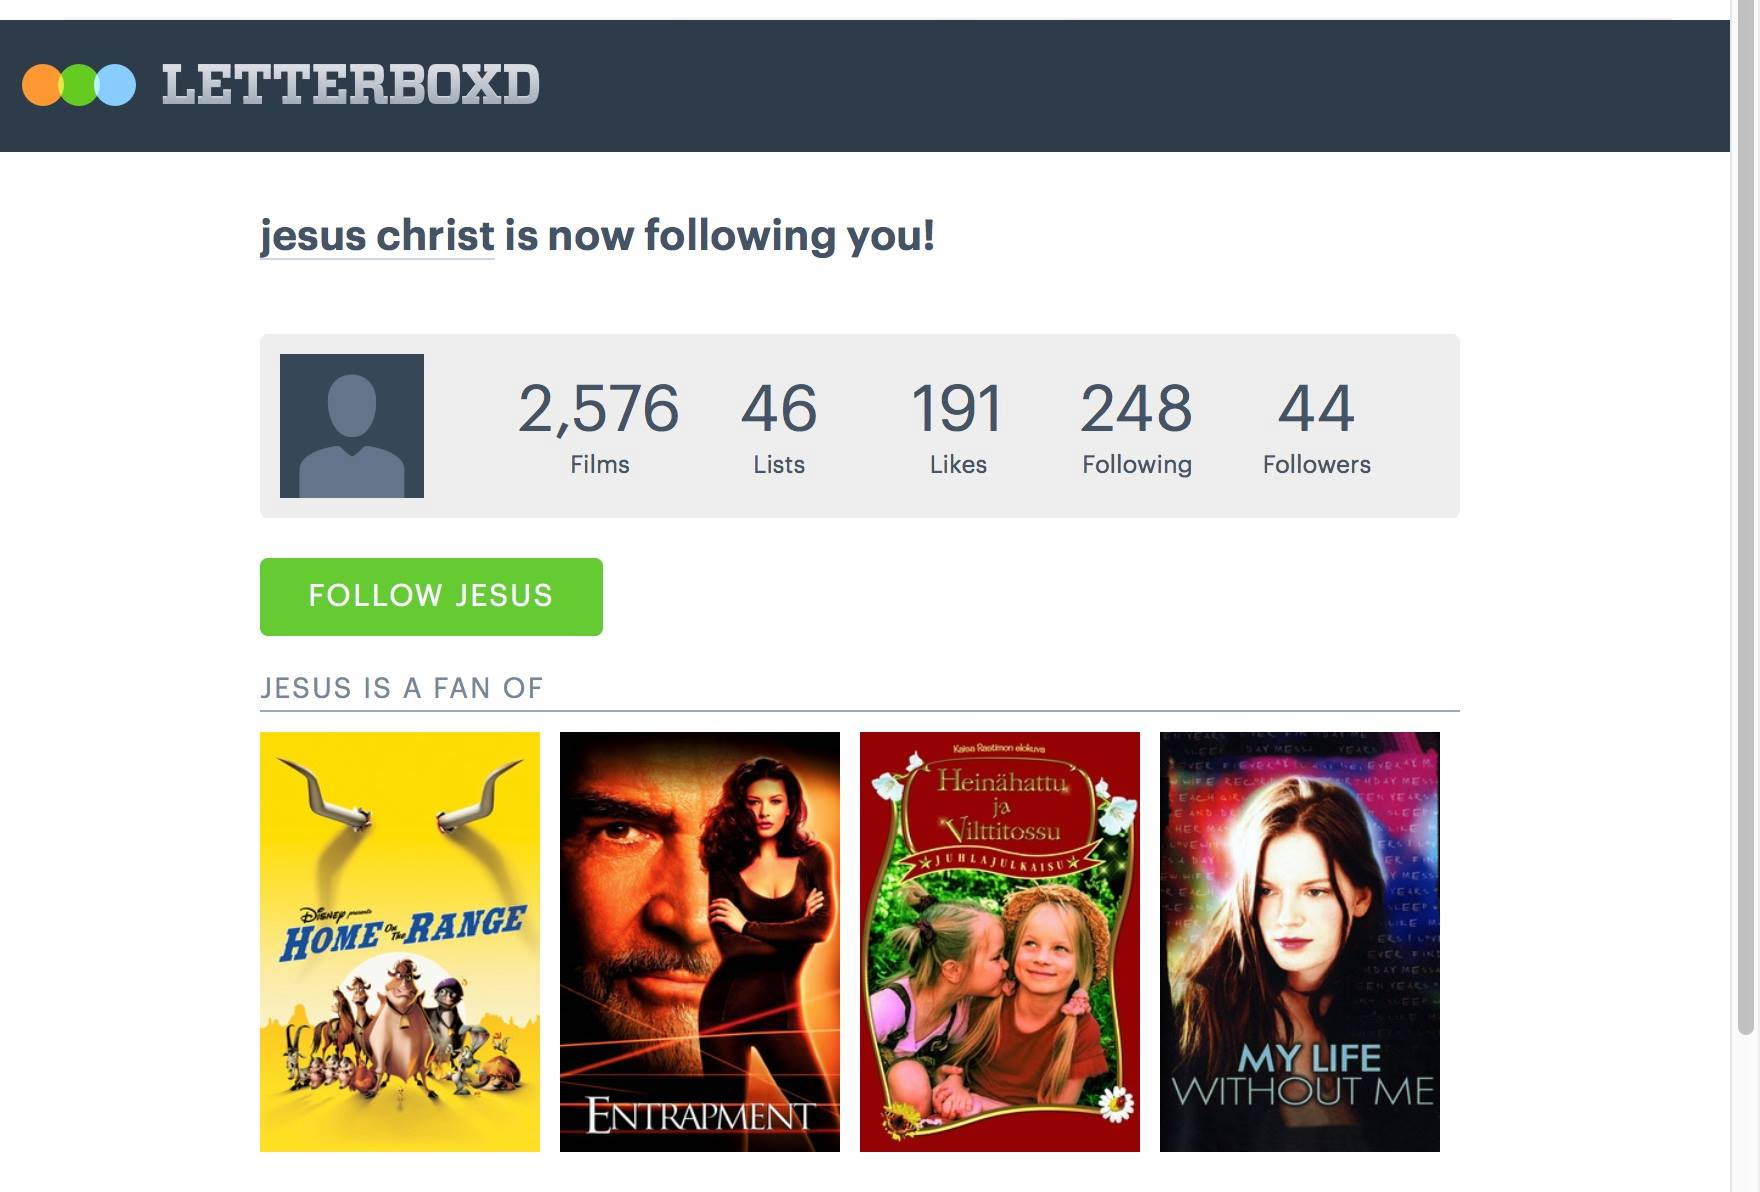 Jesus Christ is now following me on Letterboxd ...